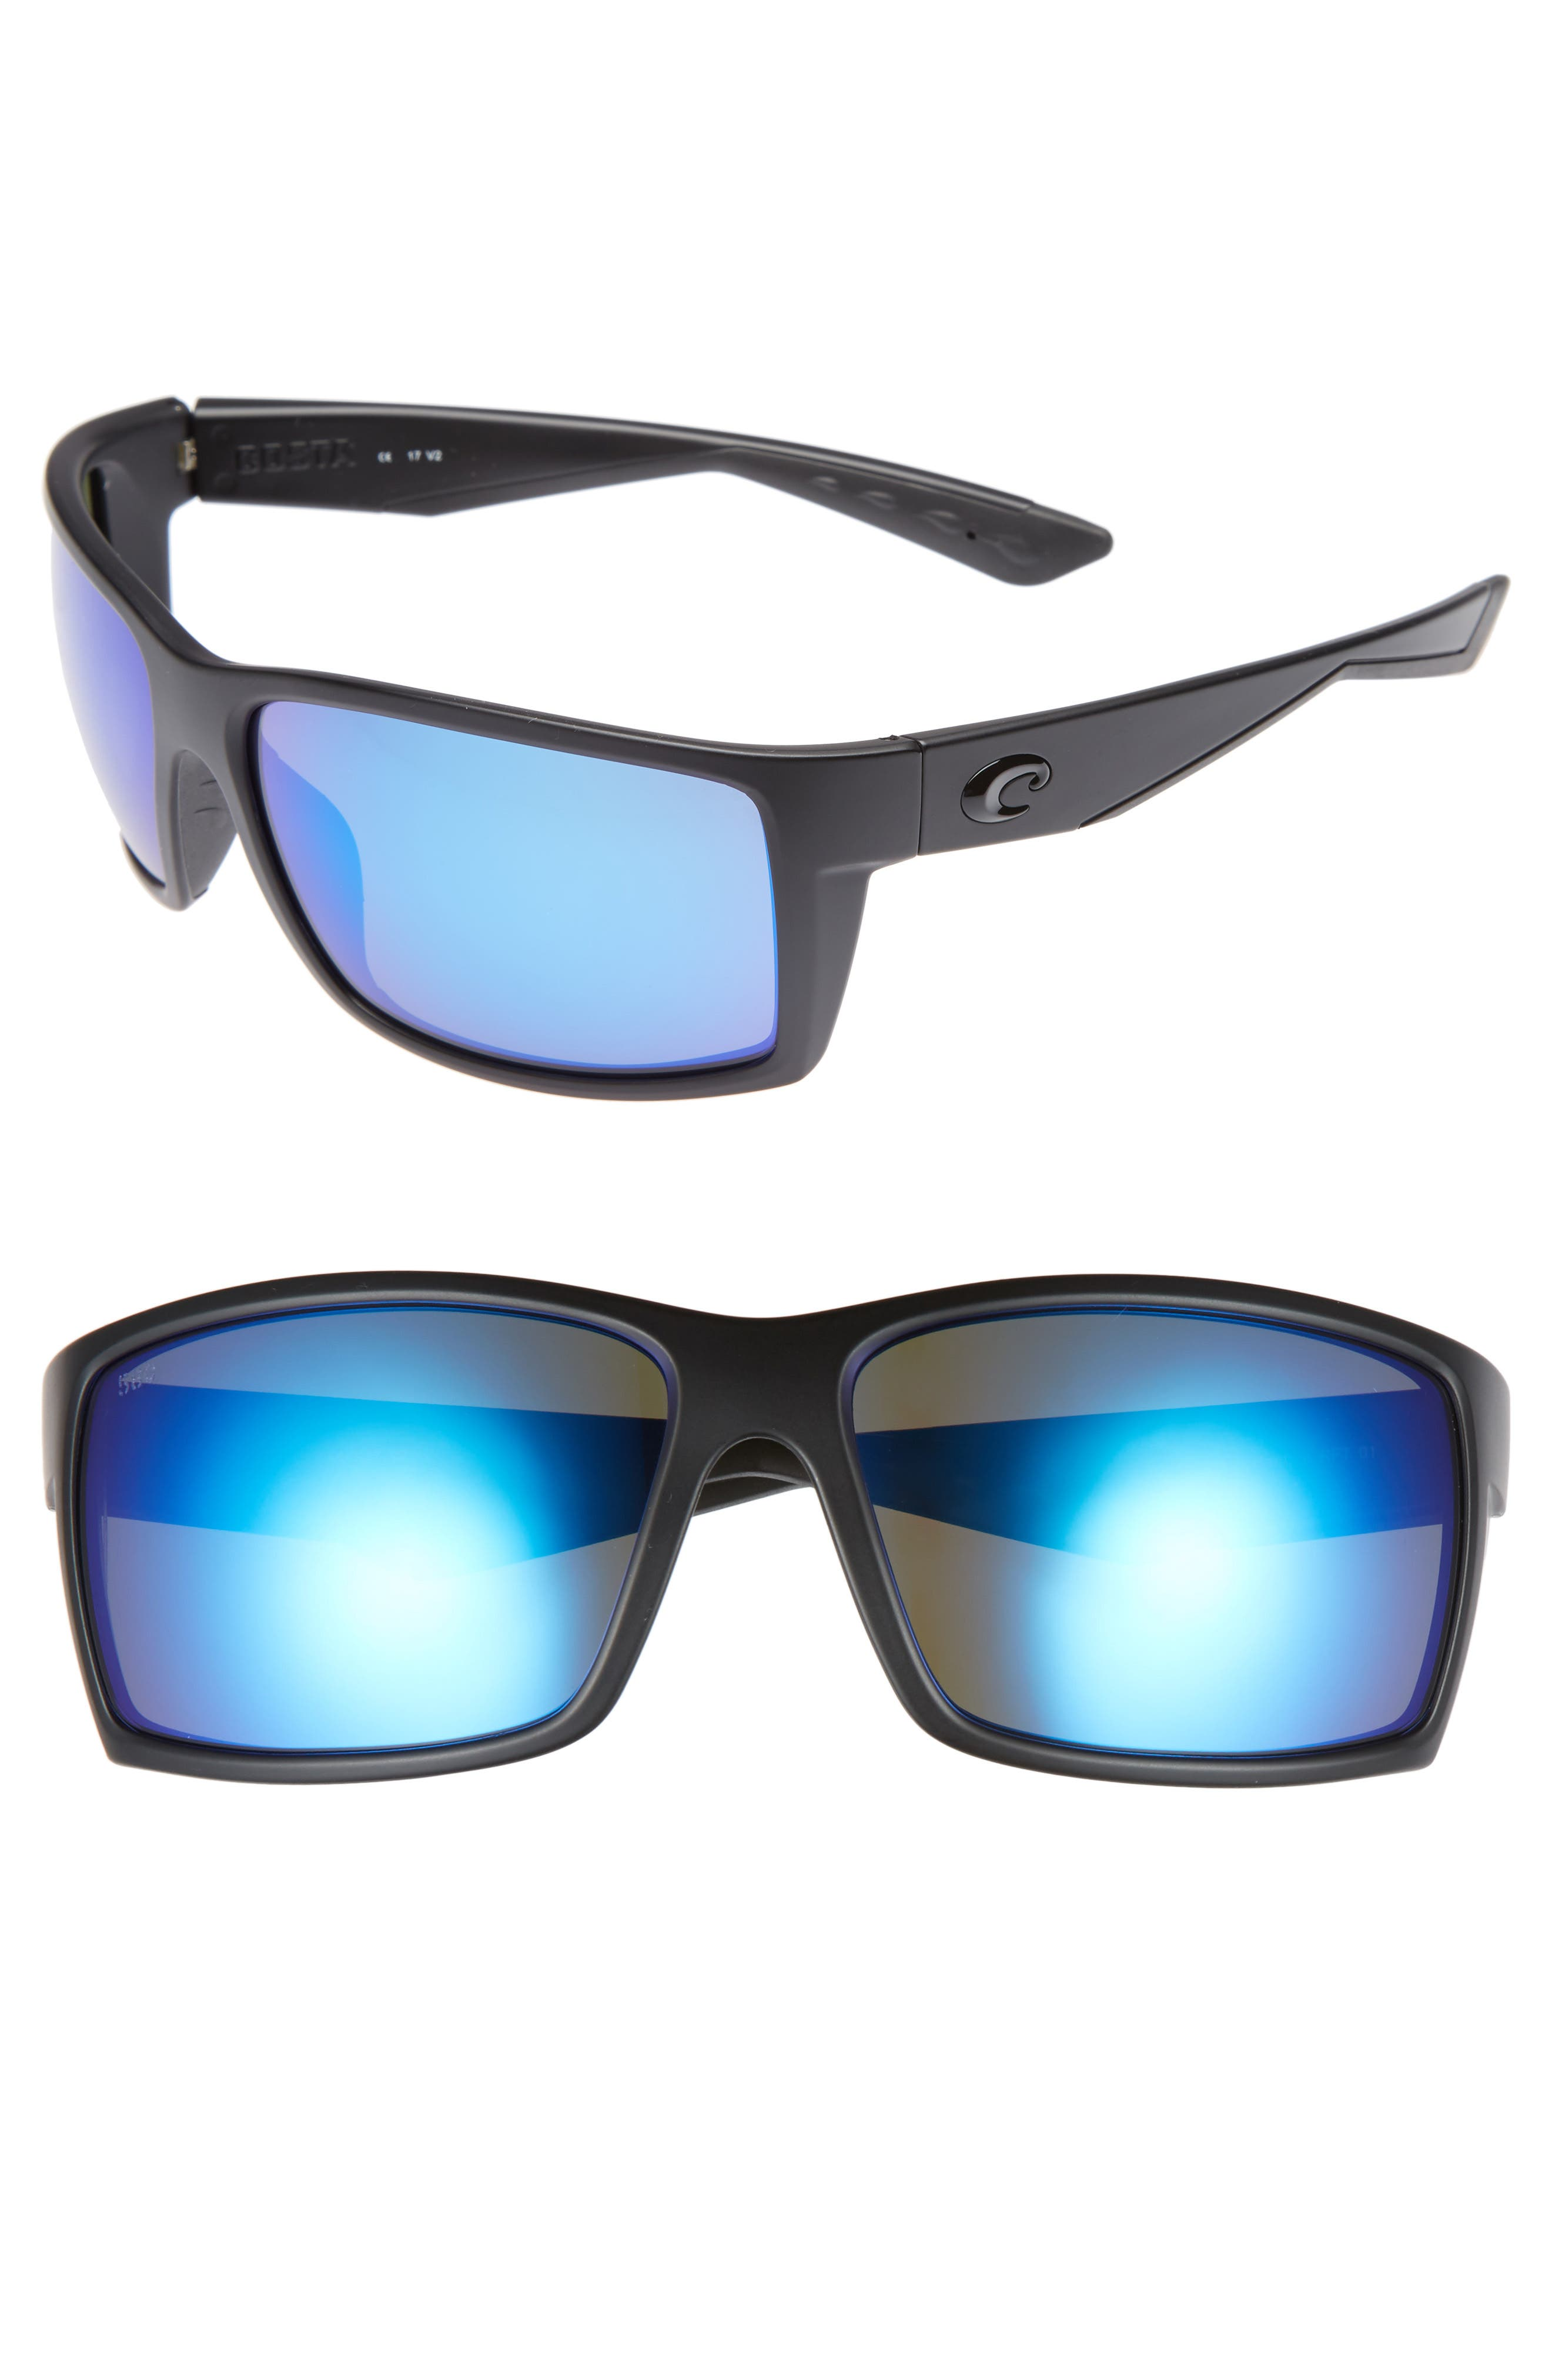 Reefton 65mm Polarized Sunglasses,                             Main thumbnail 1, color,                             BLACKOUT/ BLUE MIRROR